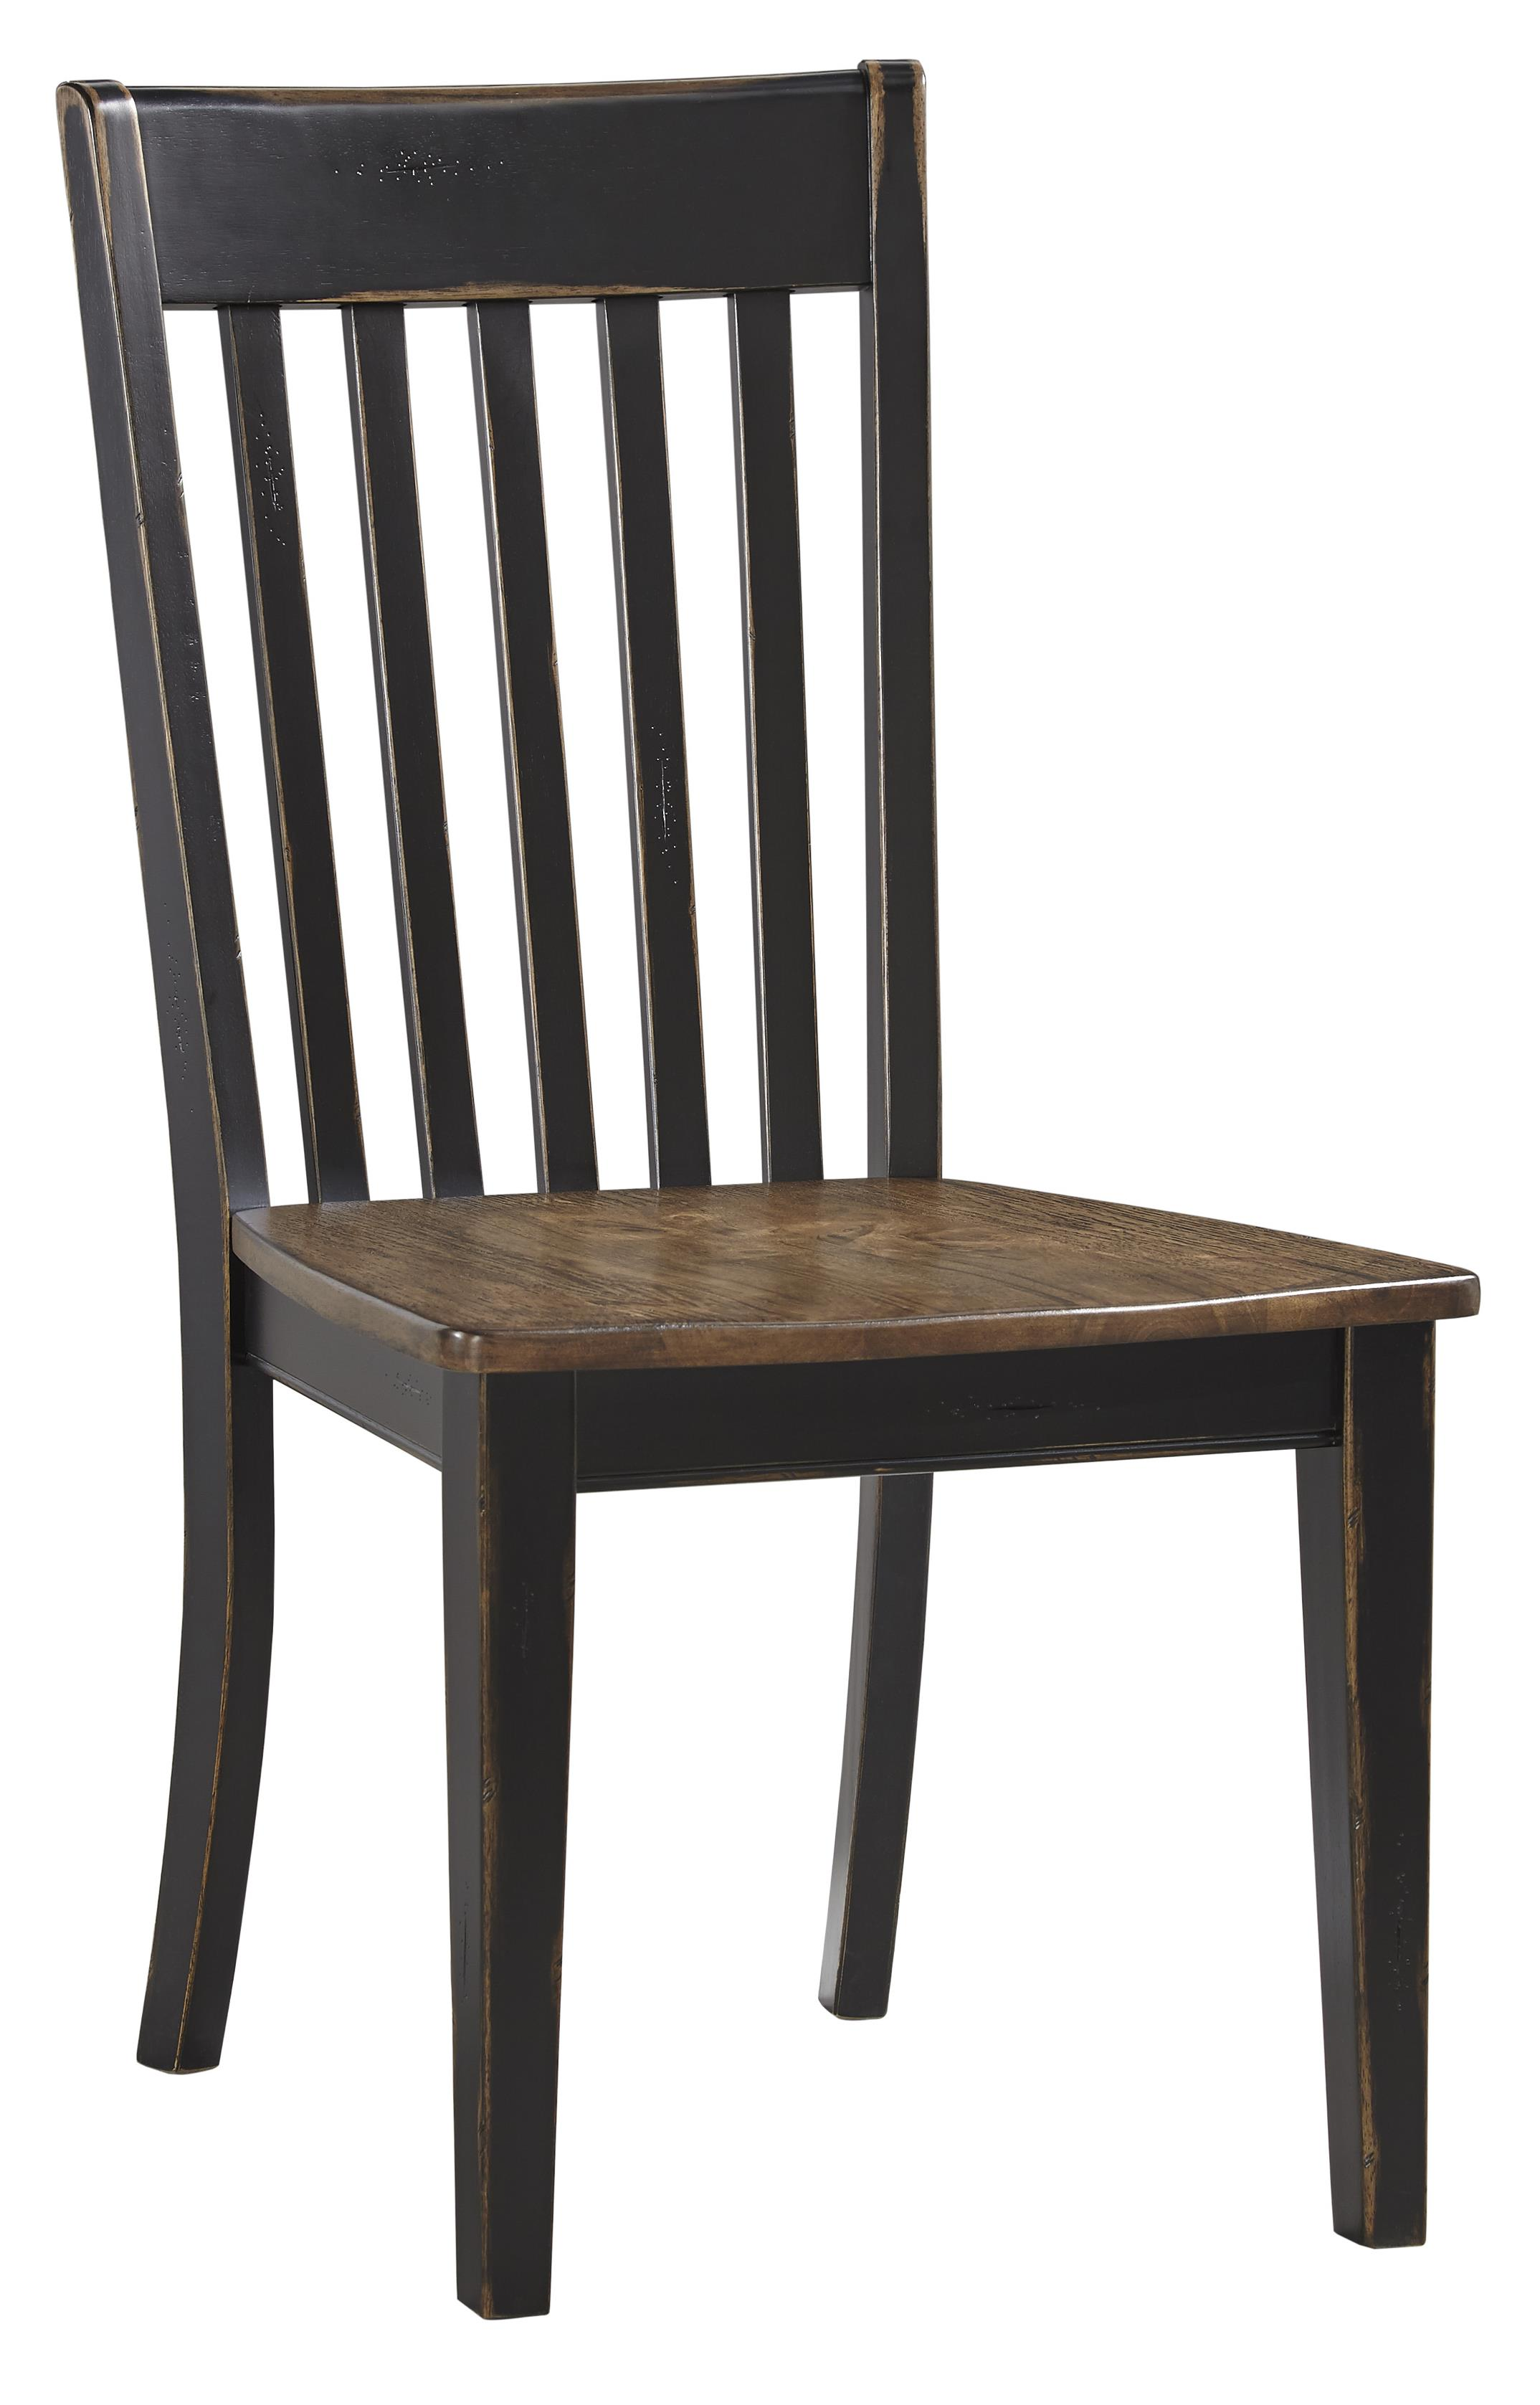 Signature Design by Ashley Emerfield Dining Room Side Chair - Item Number: D563-01